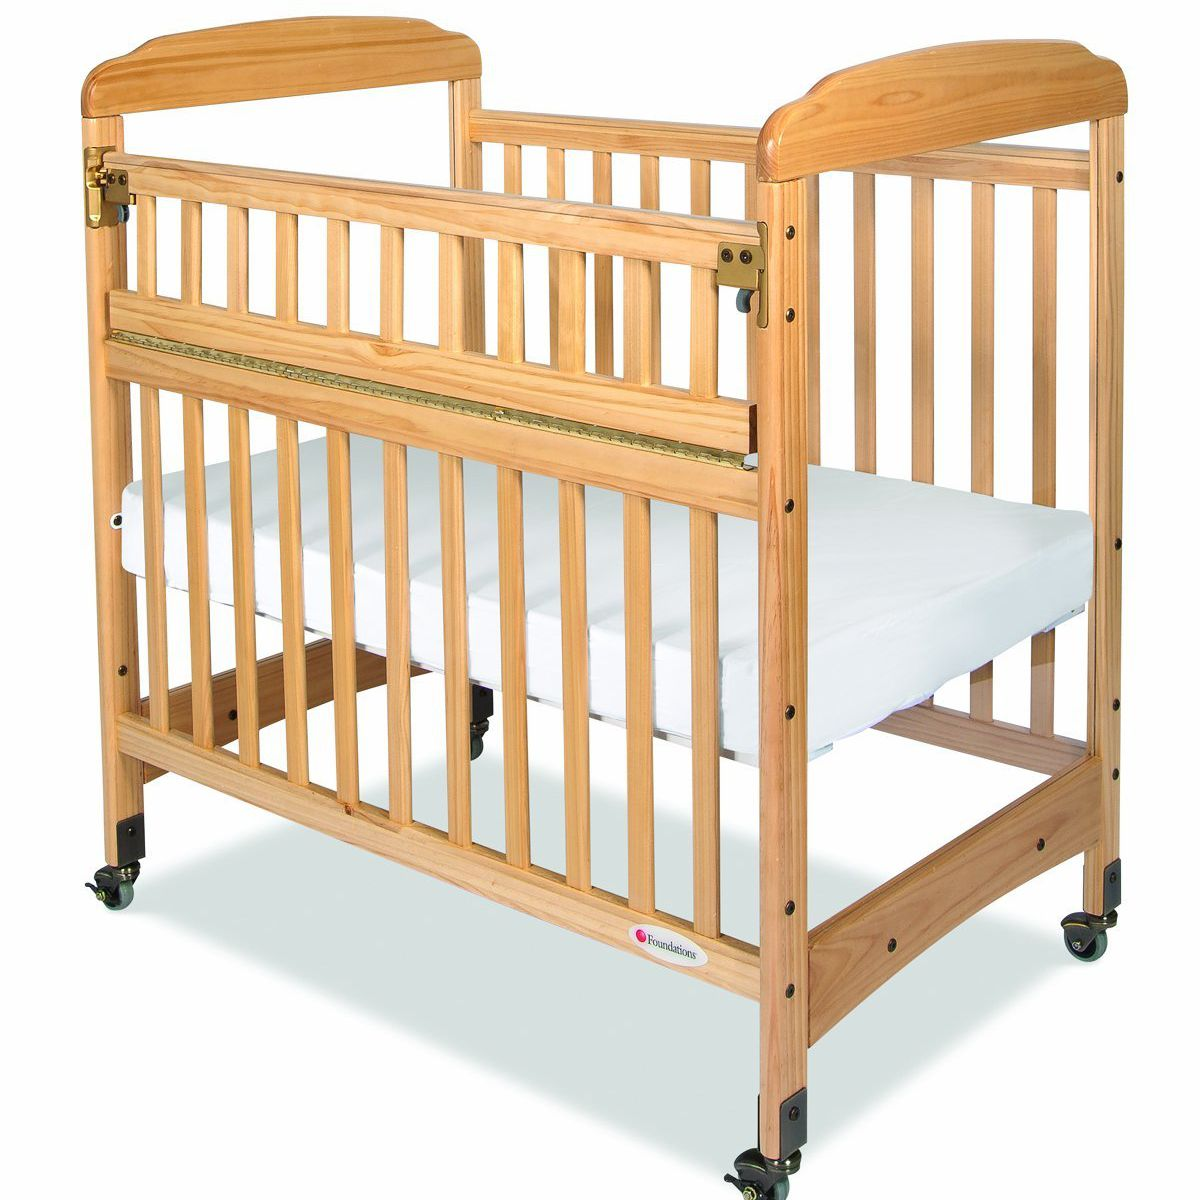 Best Traditional Foundations Serenity Safereach Compact Crib